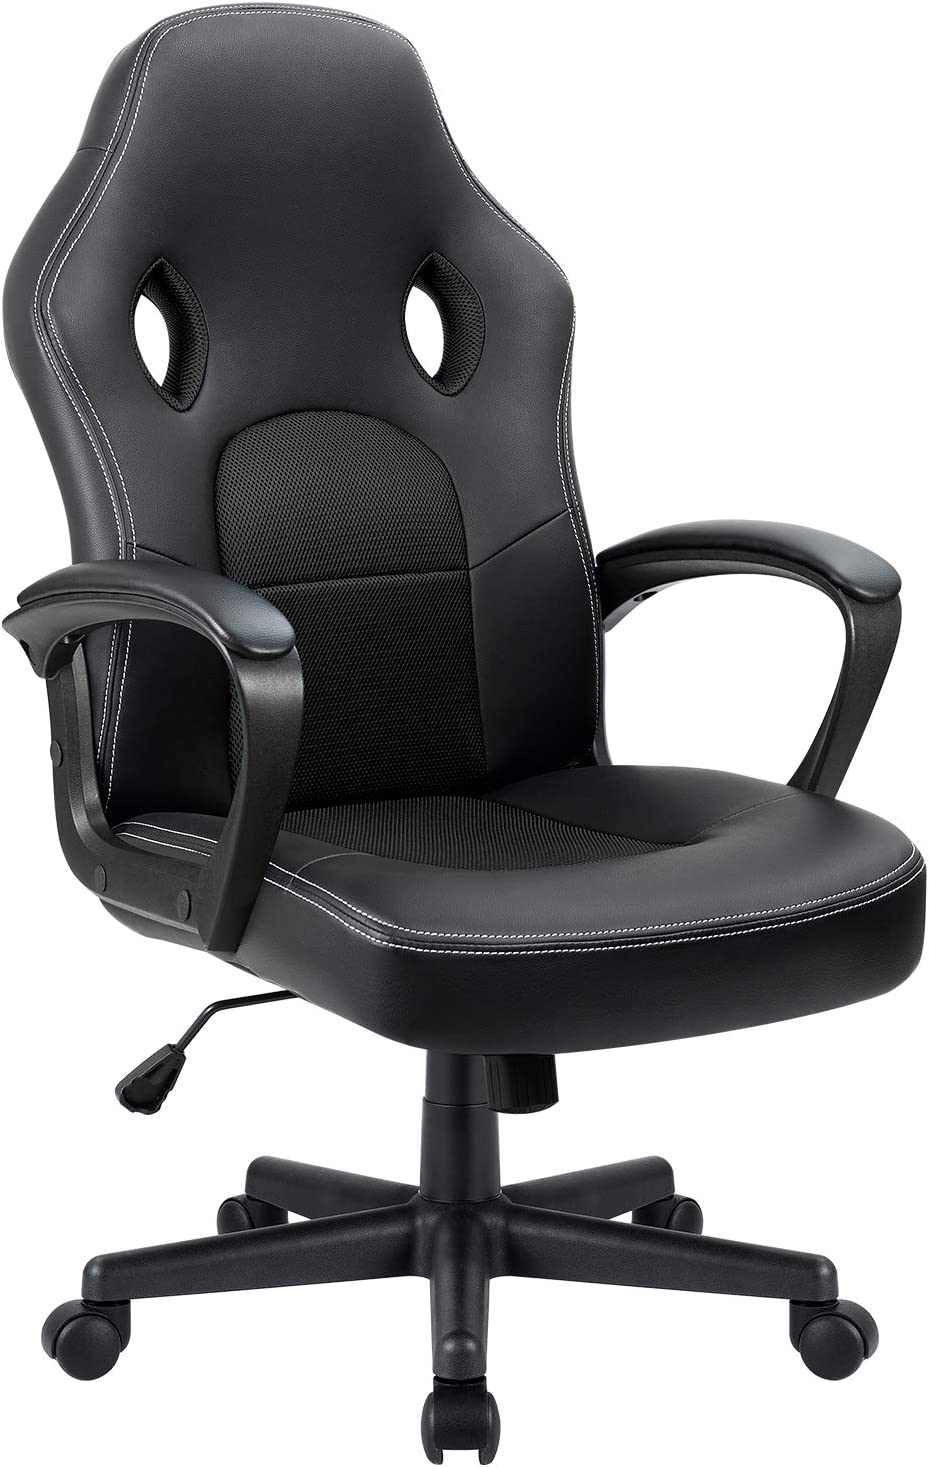 Furmax Gaming & Office Chair